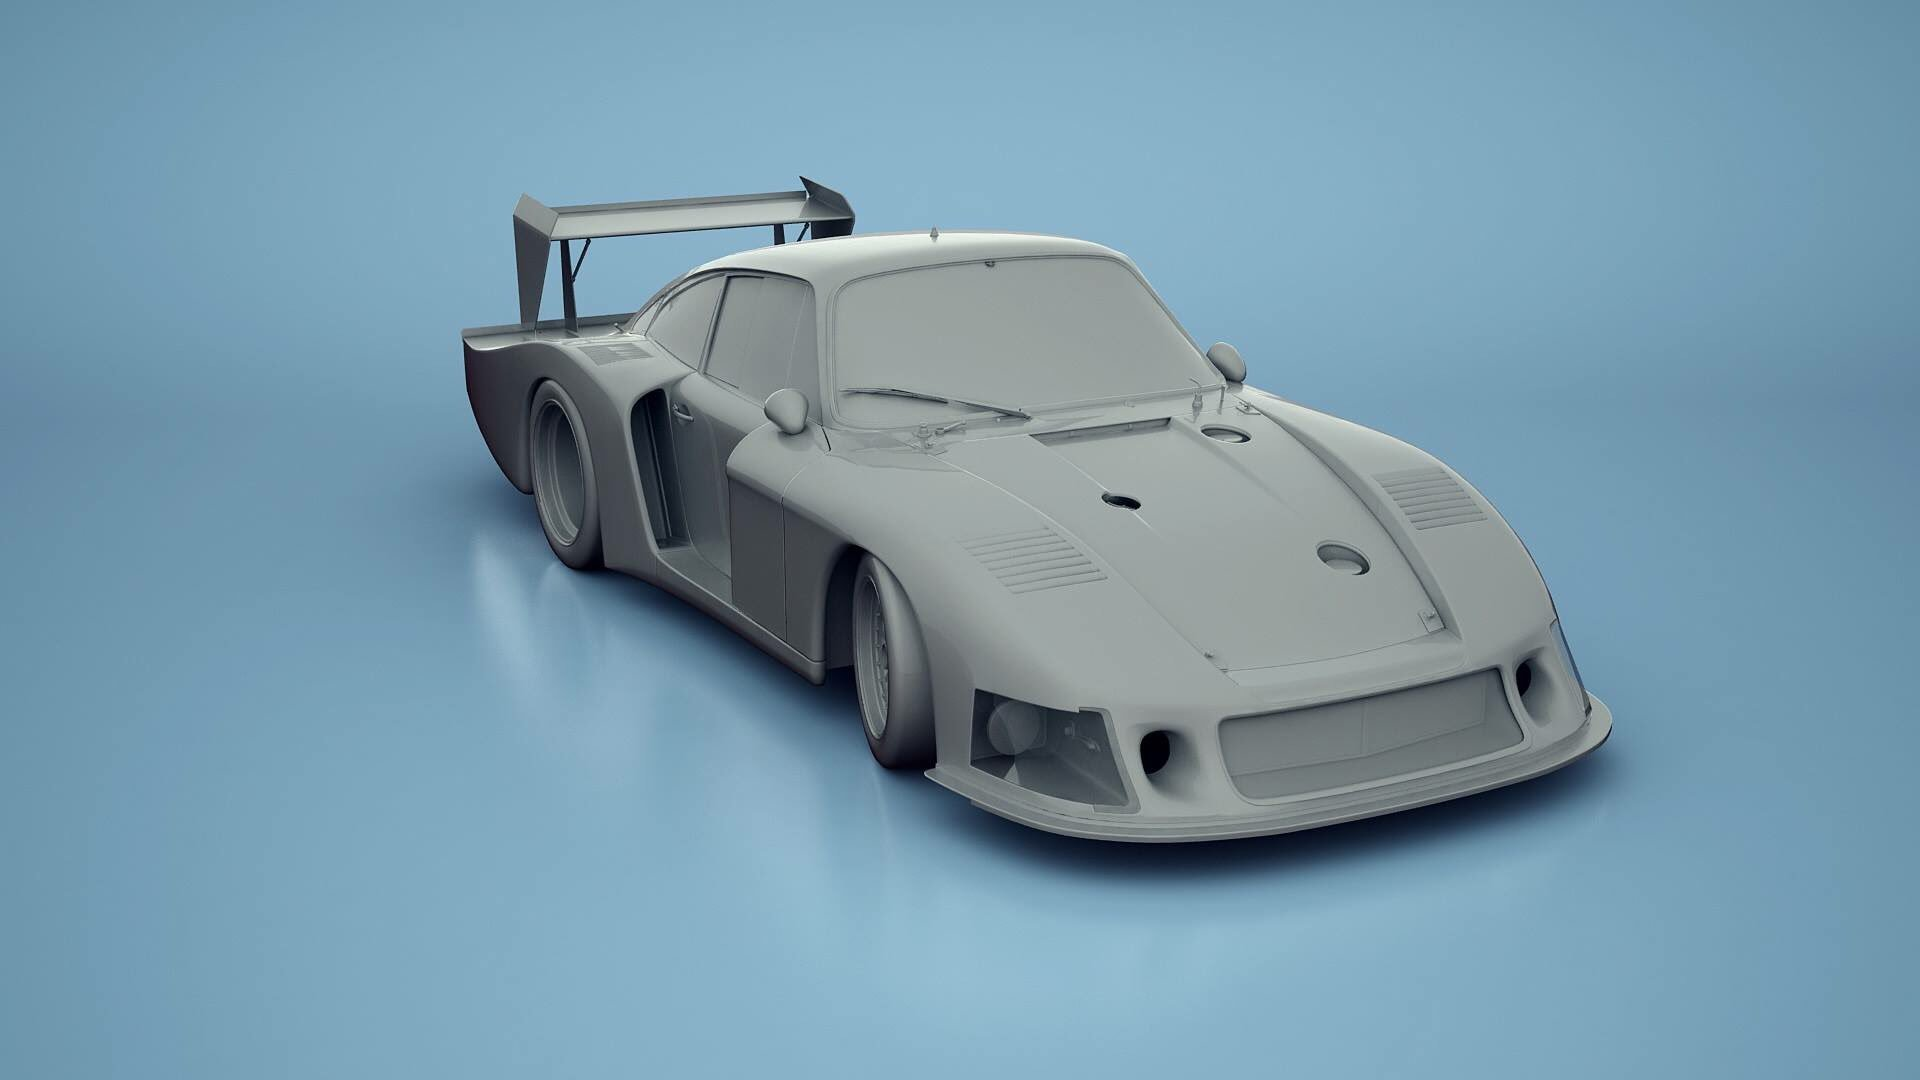 assetto corsa welcomes porsche page 11 assetto corsa support forum. Black Bedroom Furniture Sets. Home Design Ideas